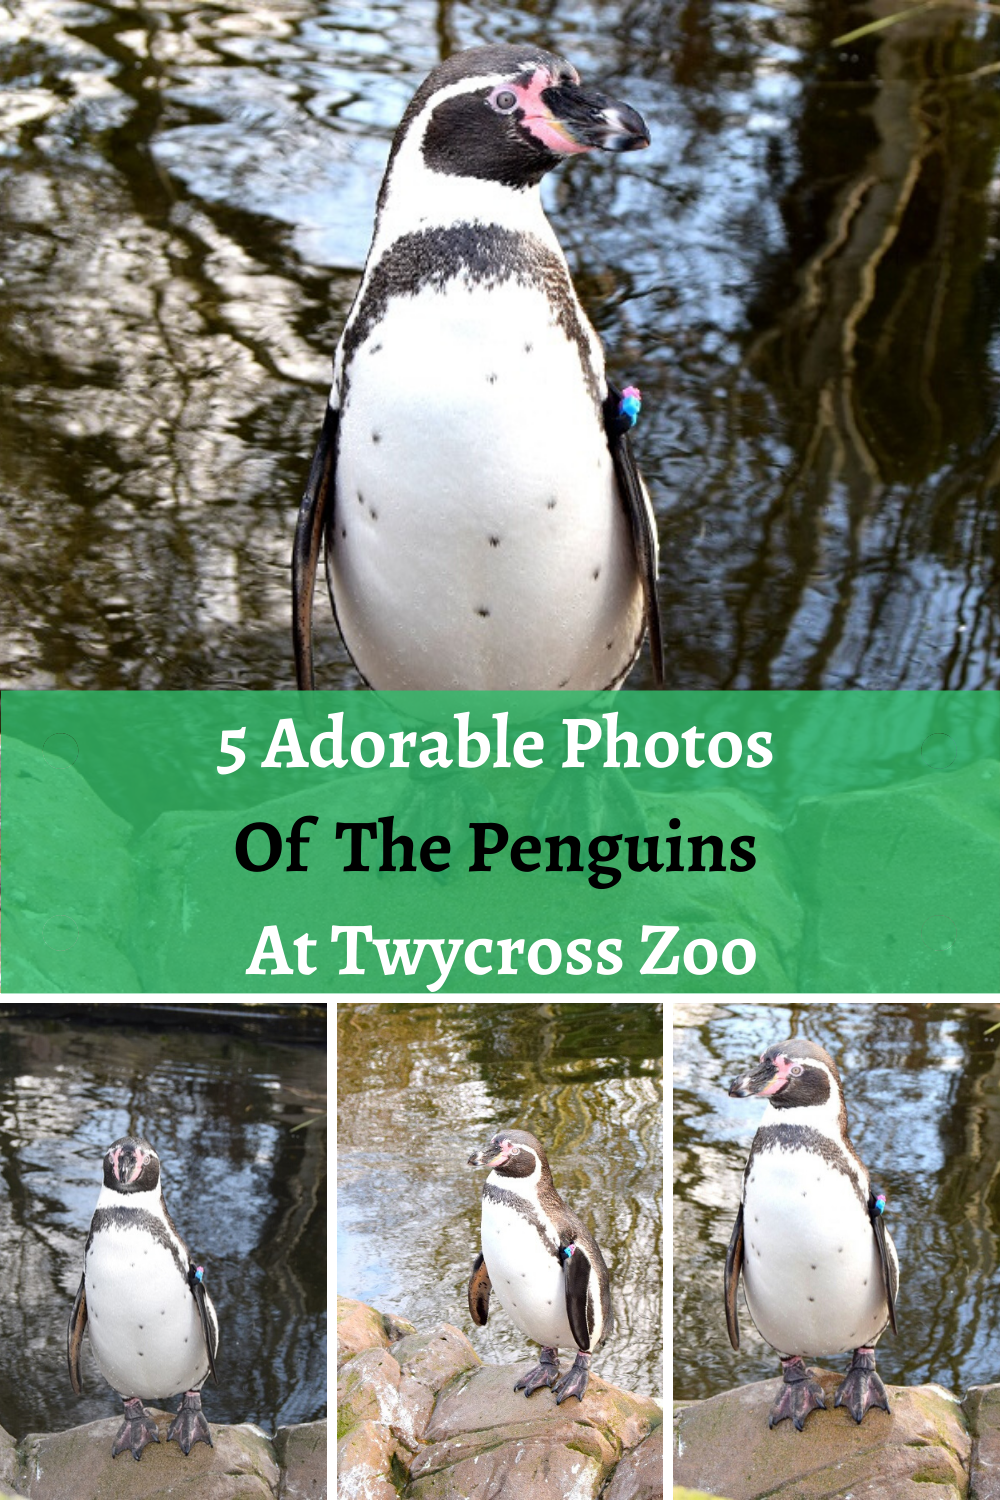 5 Adorable Photos Of The Penguins At Twycross Zoo